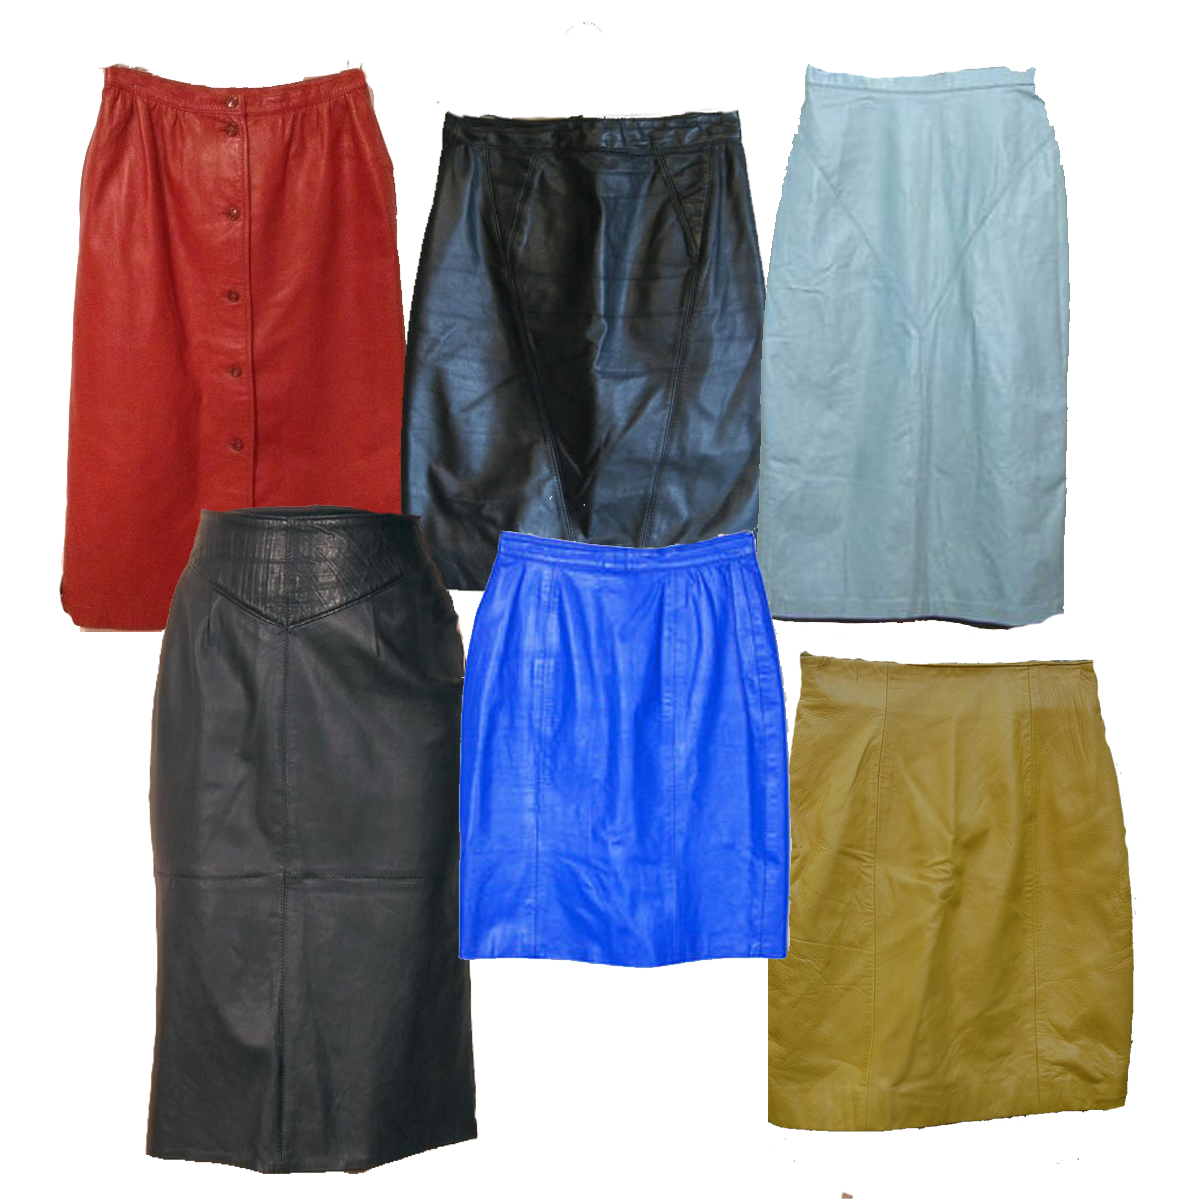 Vintage Leather Skirts